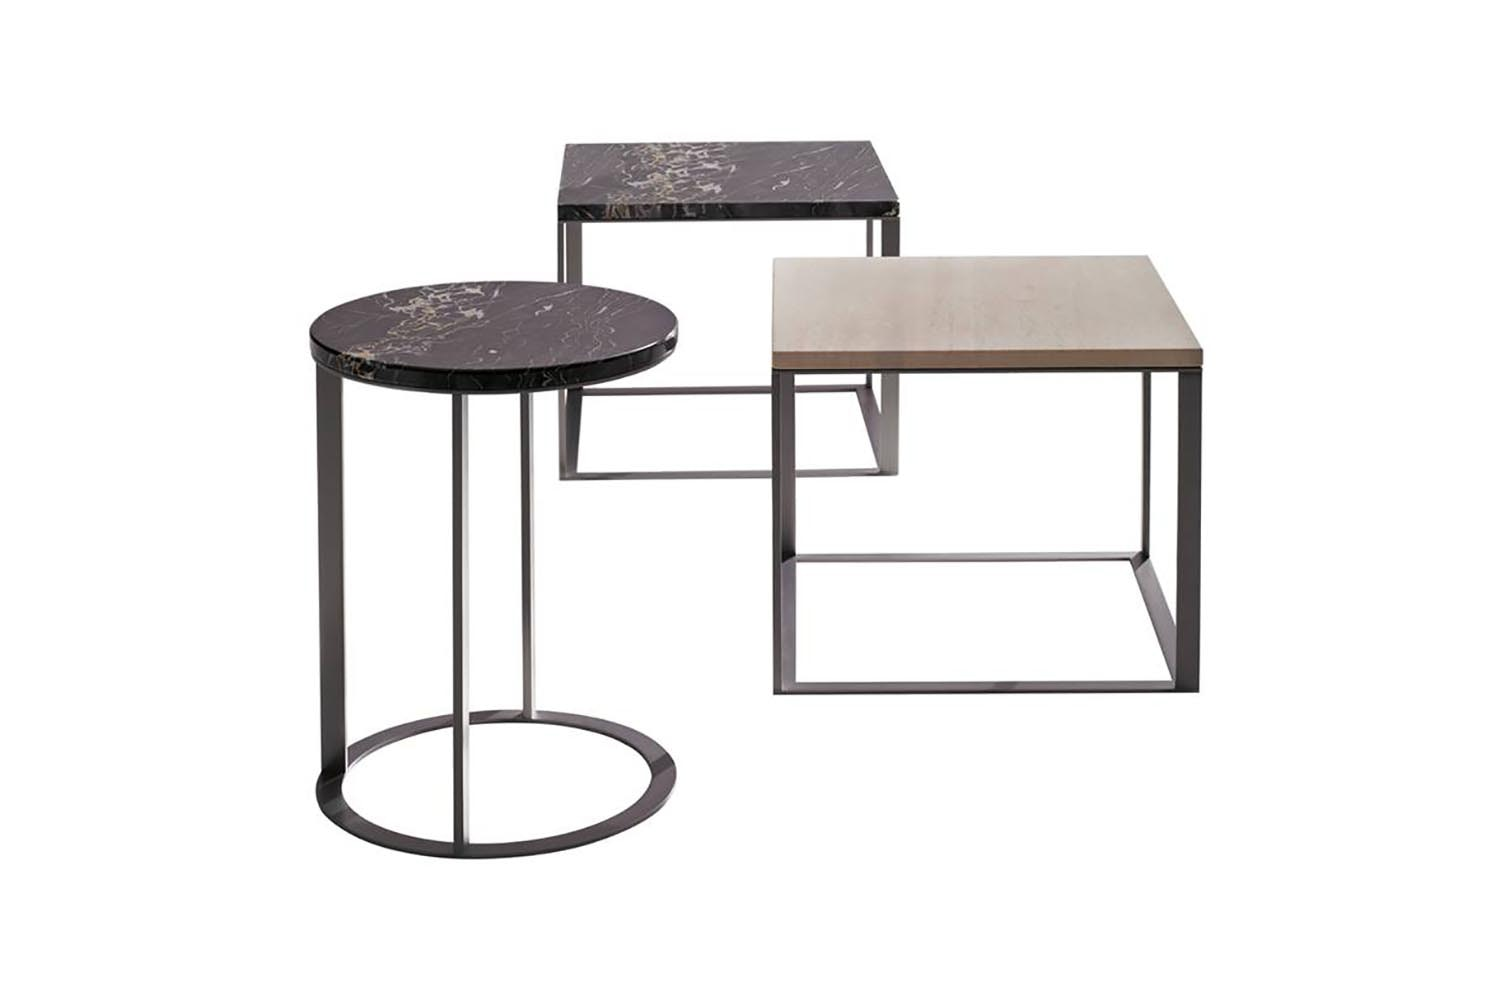 lithos side coffee table by antonio citterio for maxalto space furniture